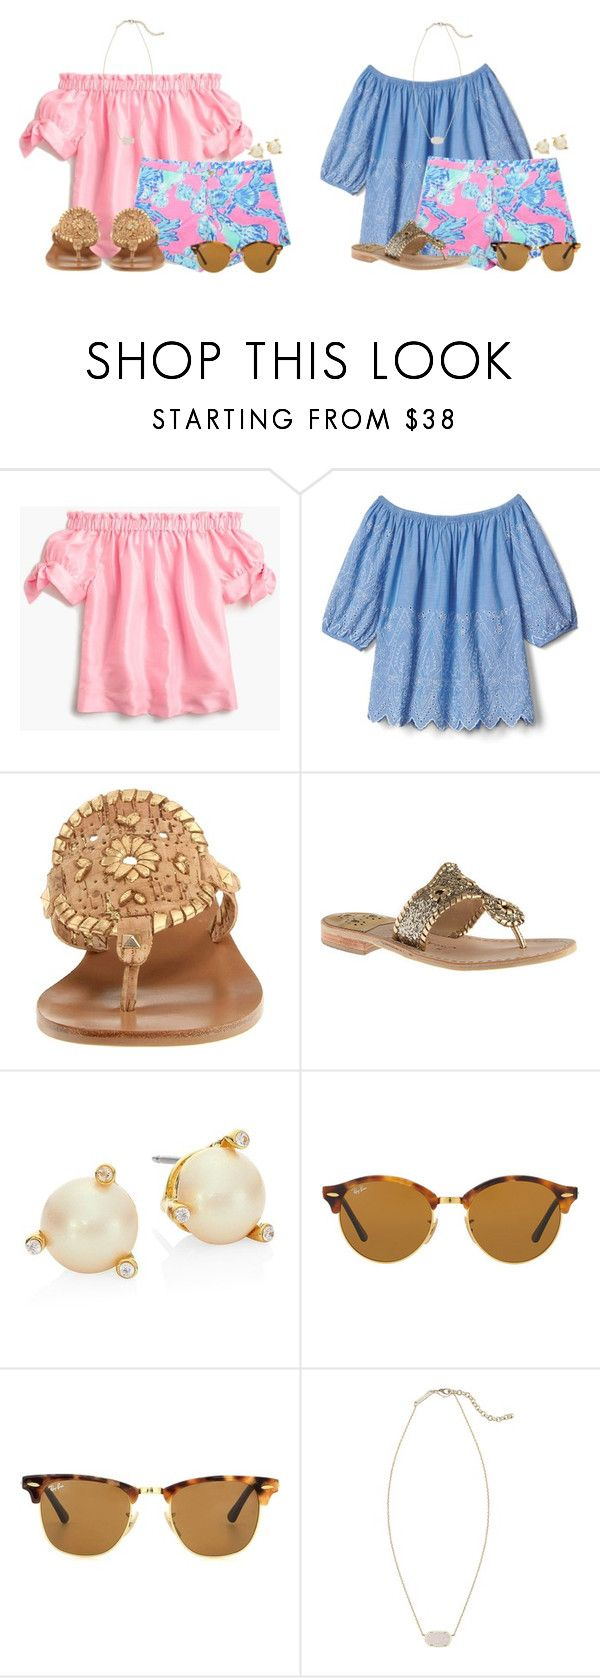 """How would you wear these Lilly shorts??"" by flroasburn on Polyvore featuring J.Crew, Lilly Pulitzer, Gap, Jack Rogers, Kate Spade, Ray-Ban and Kendra Scott"